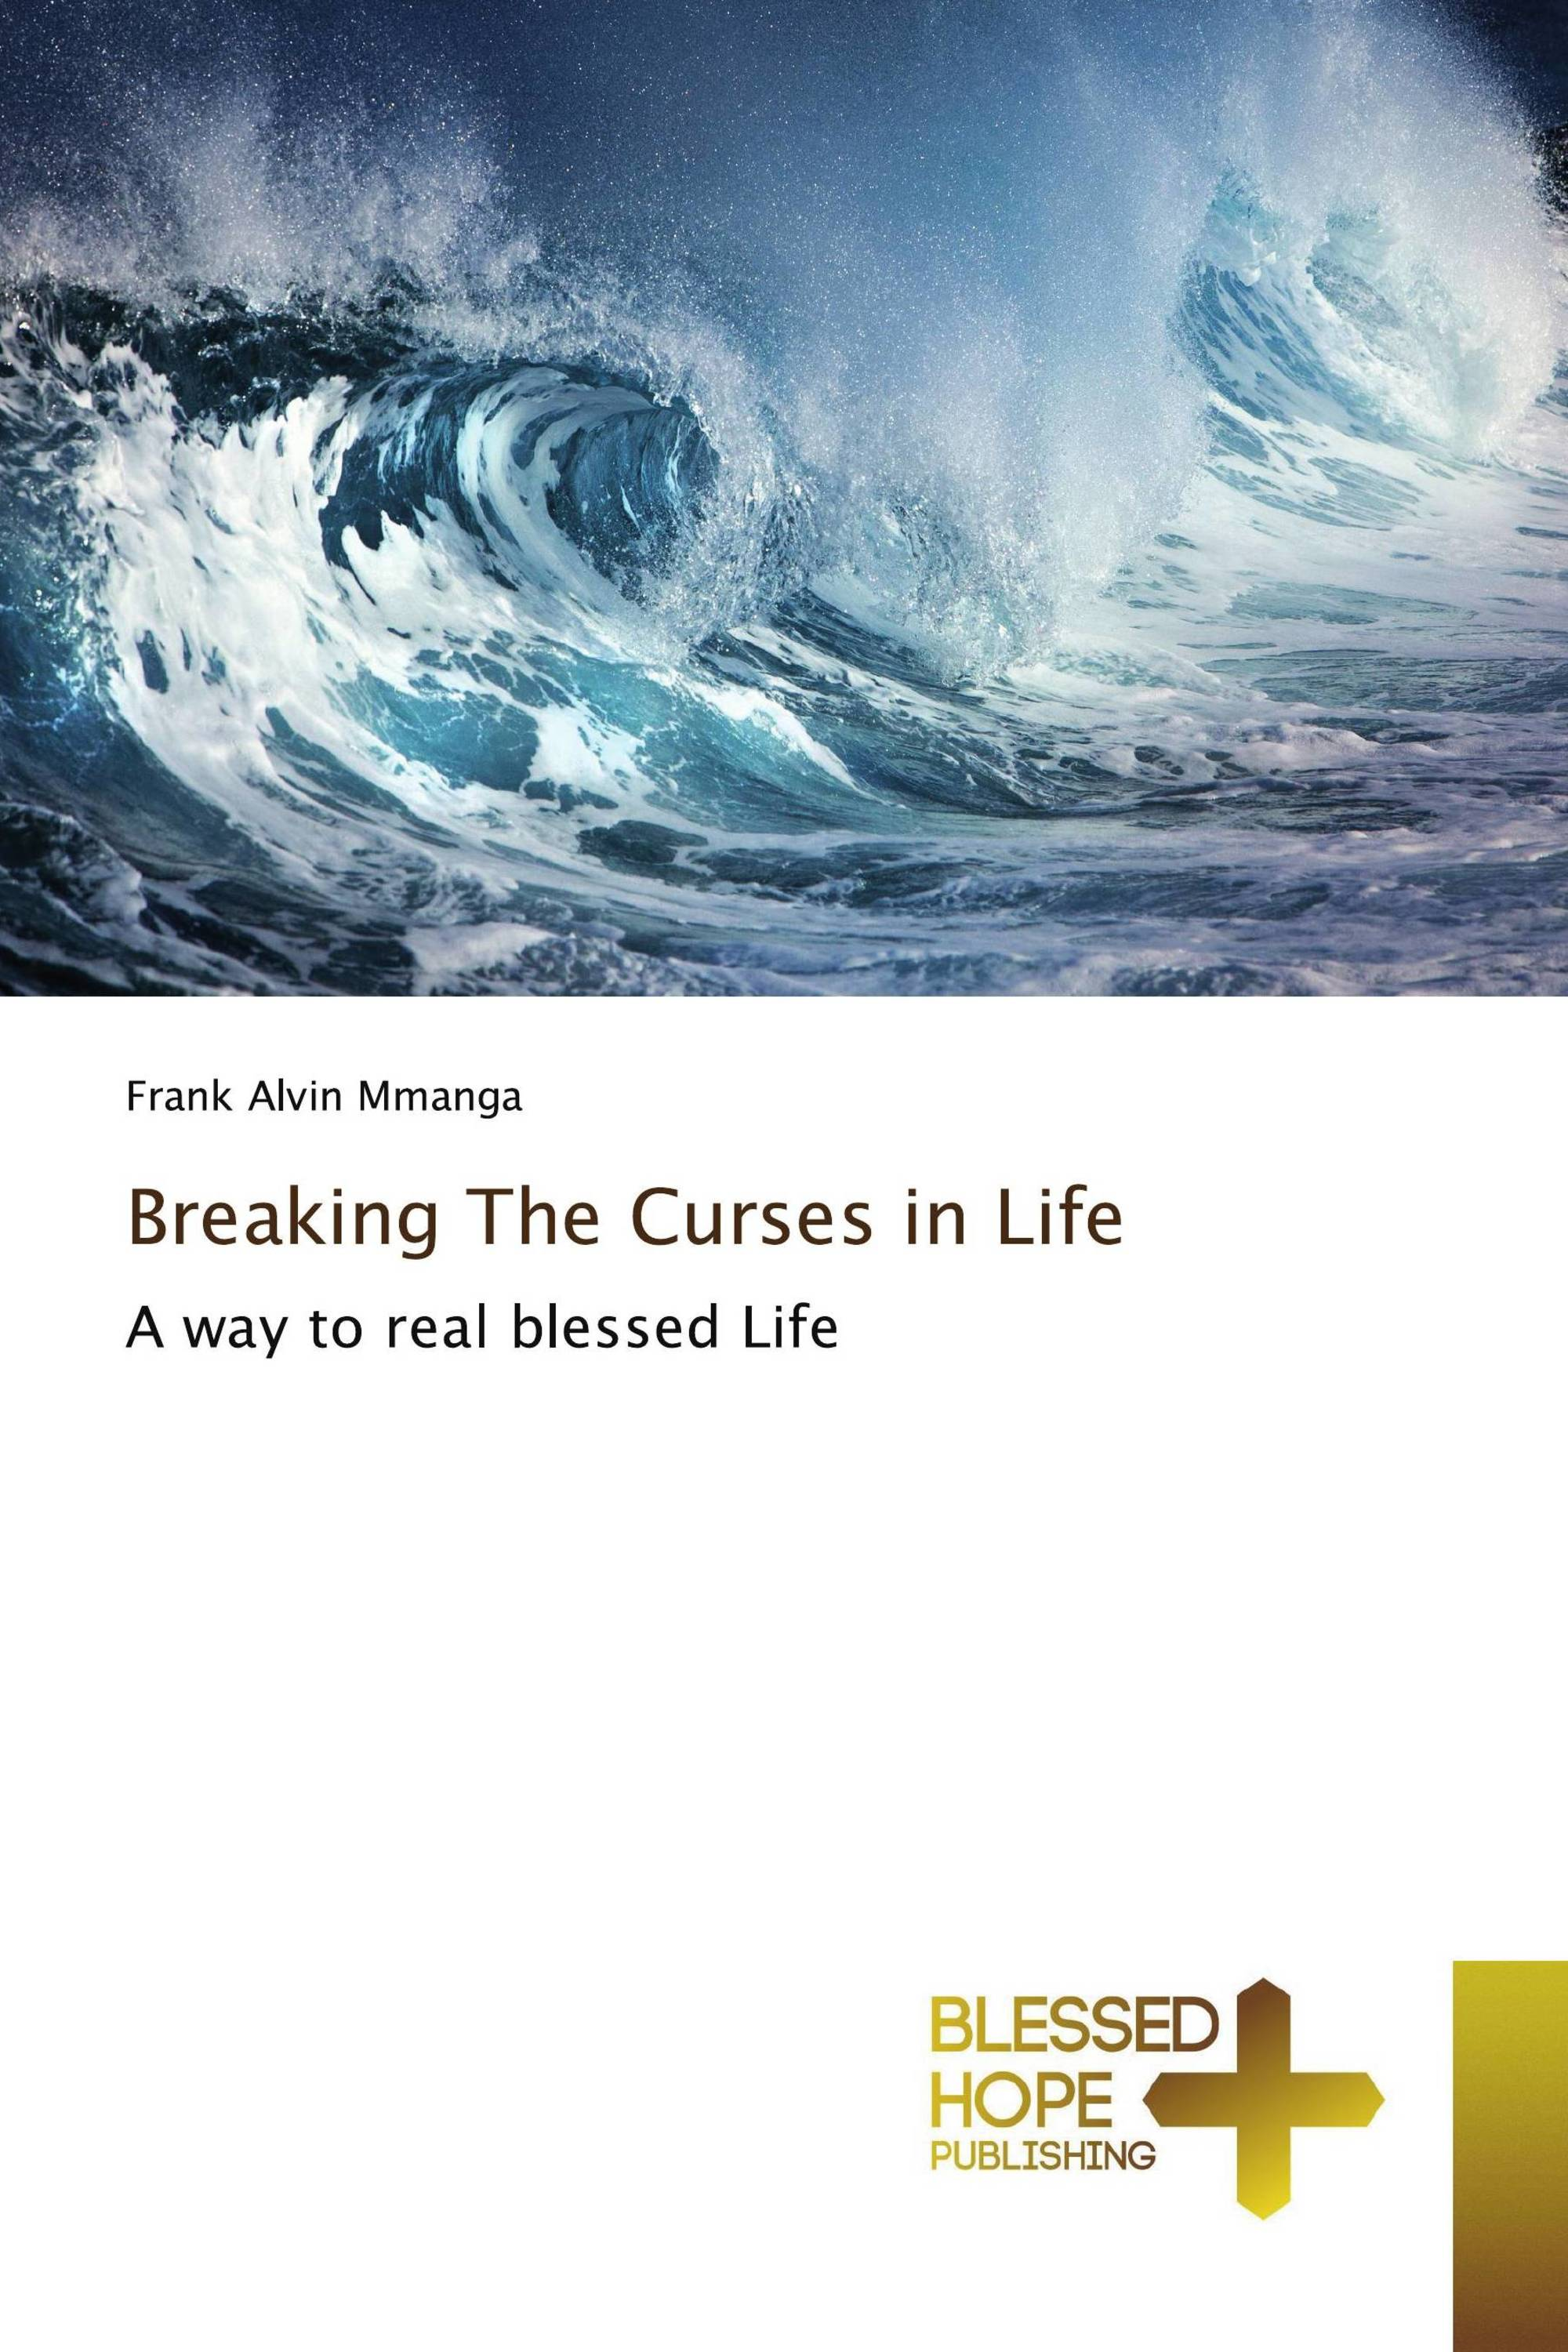 Breaking The Curses in Life